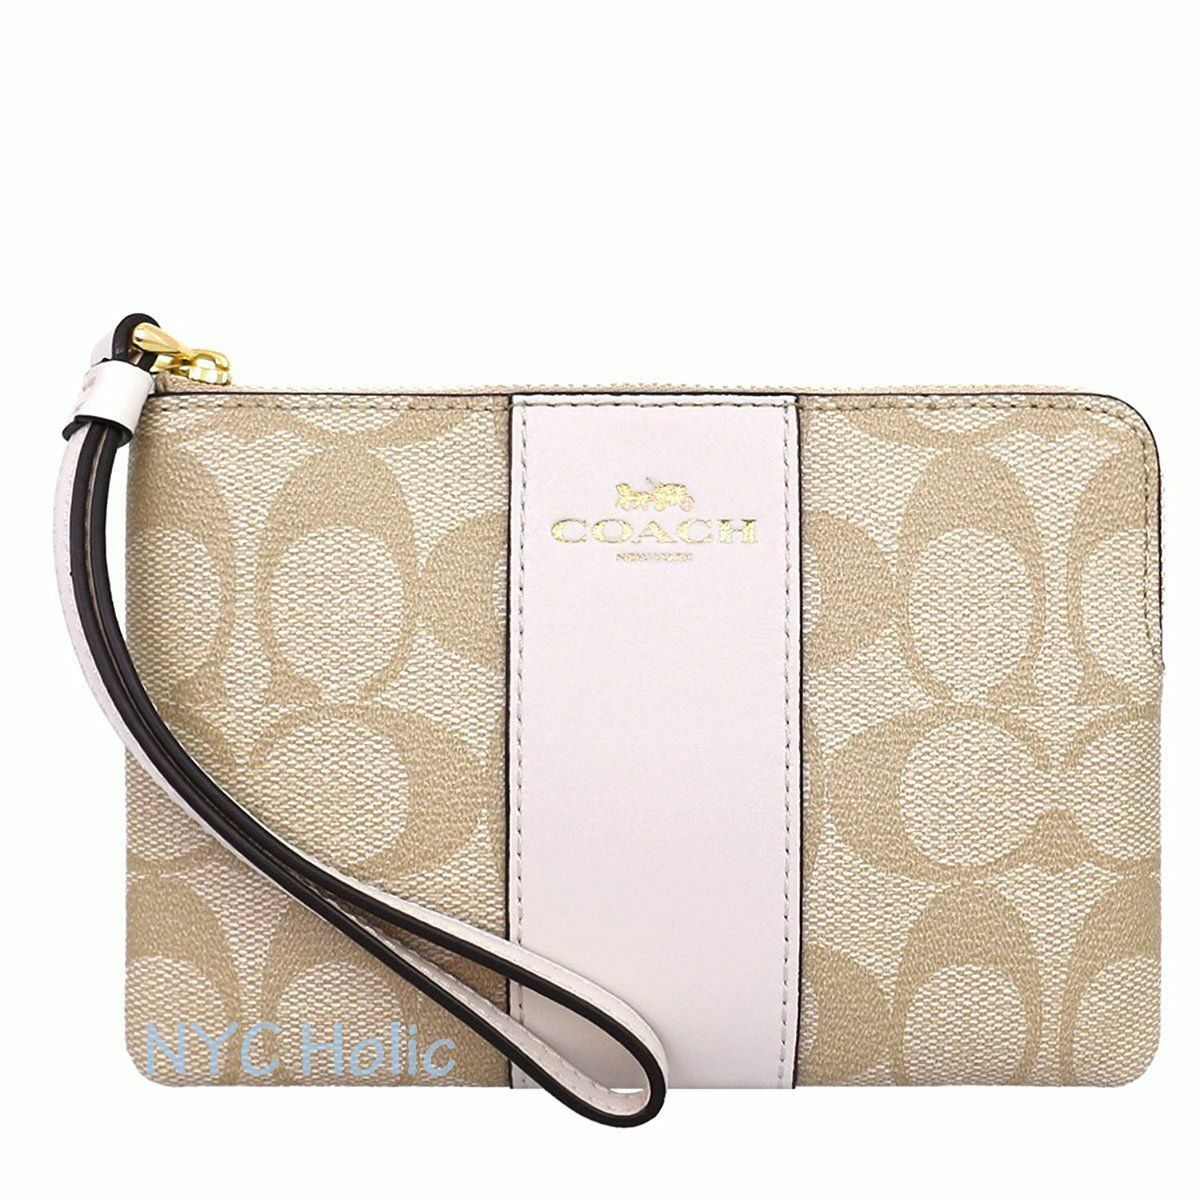 New Coach F58032 F58035 Corner Zip Wristlet With Gift Box New With Tags Light Khaki Chalk